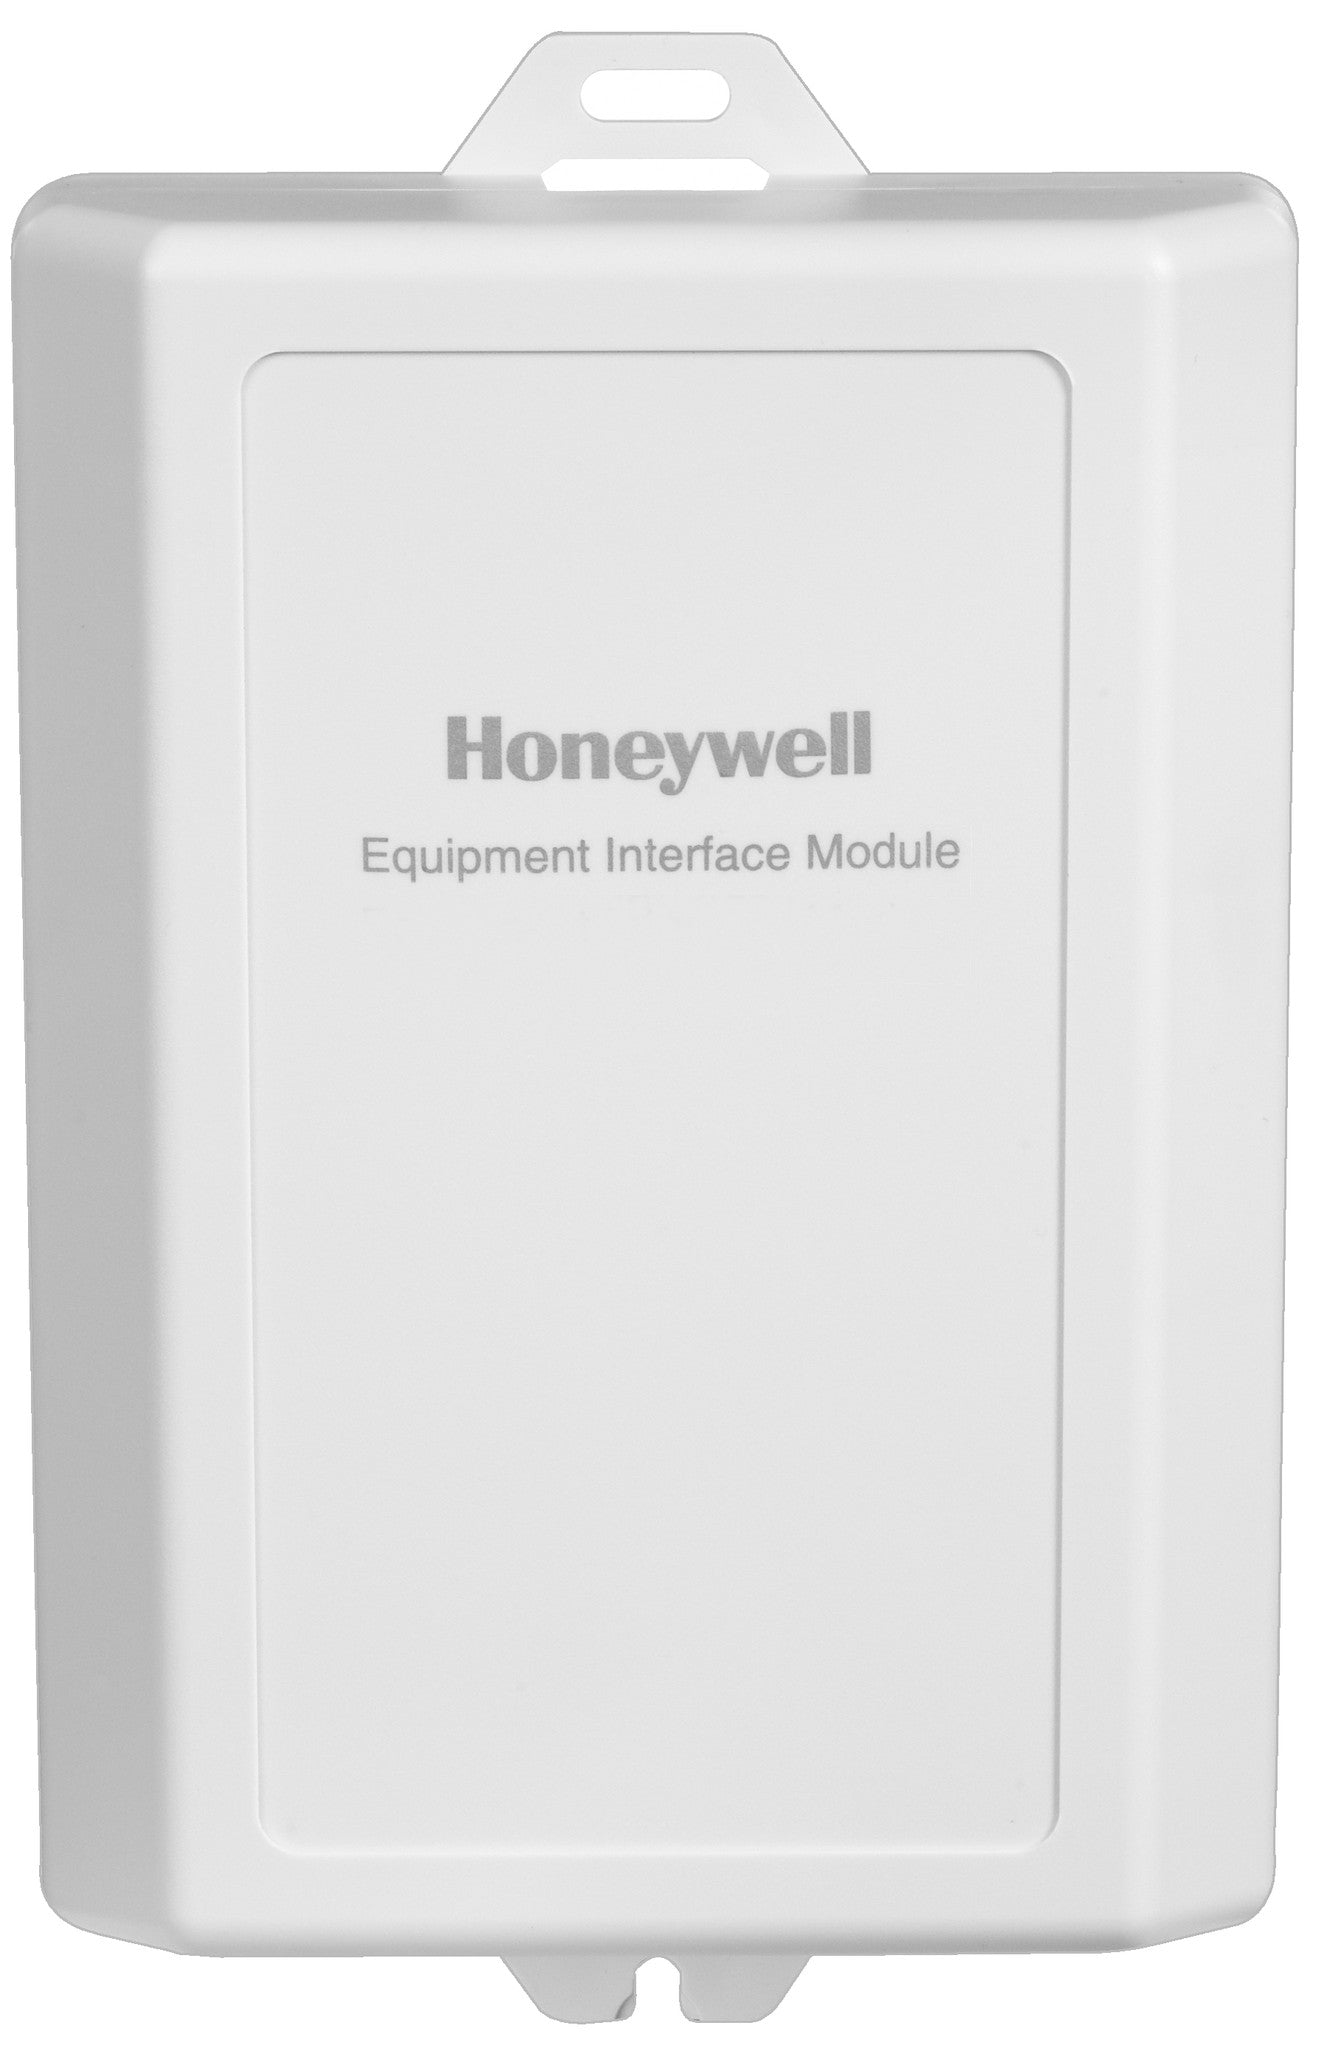 Thermostats - Honeywell, LuxPro, Ranco, Robertshaw, & Tekmar